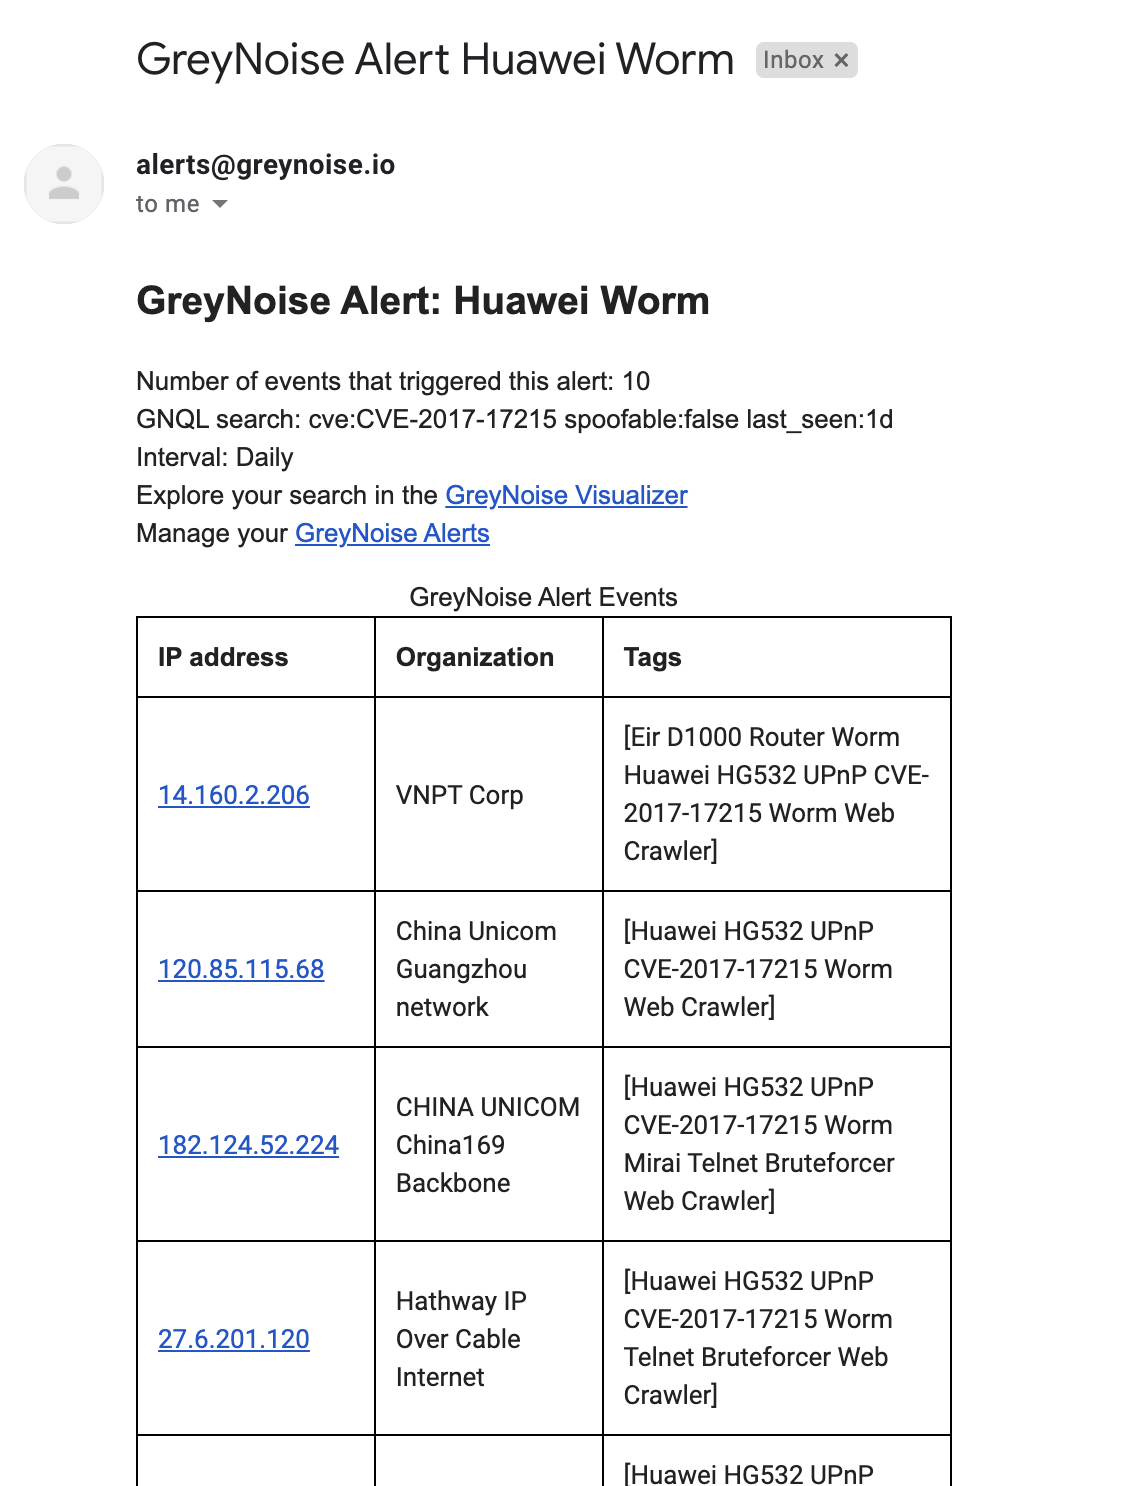 Sample alert email notification received from GreyNoise